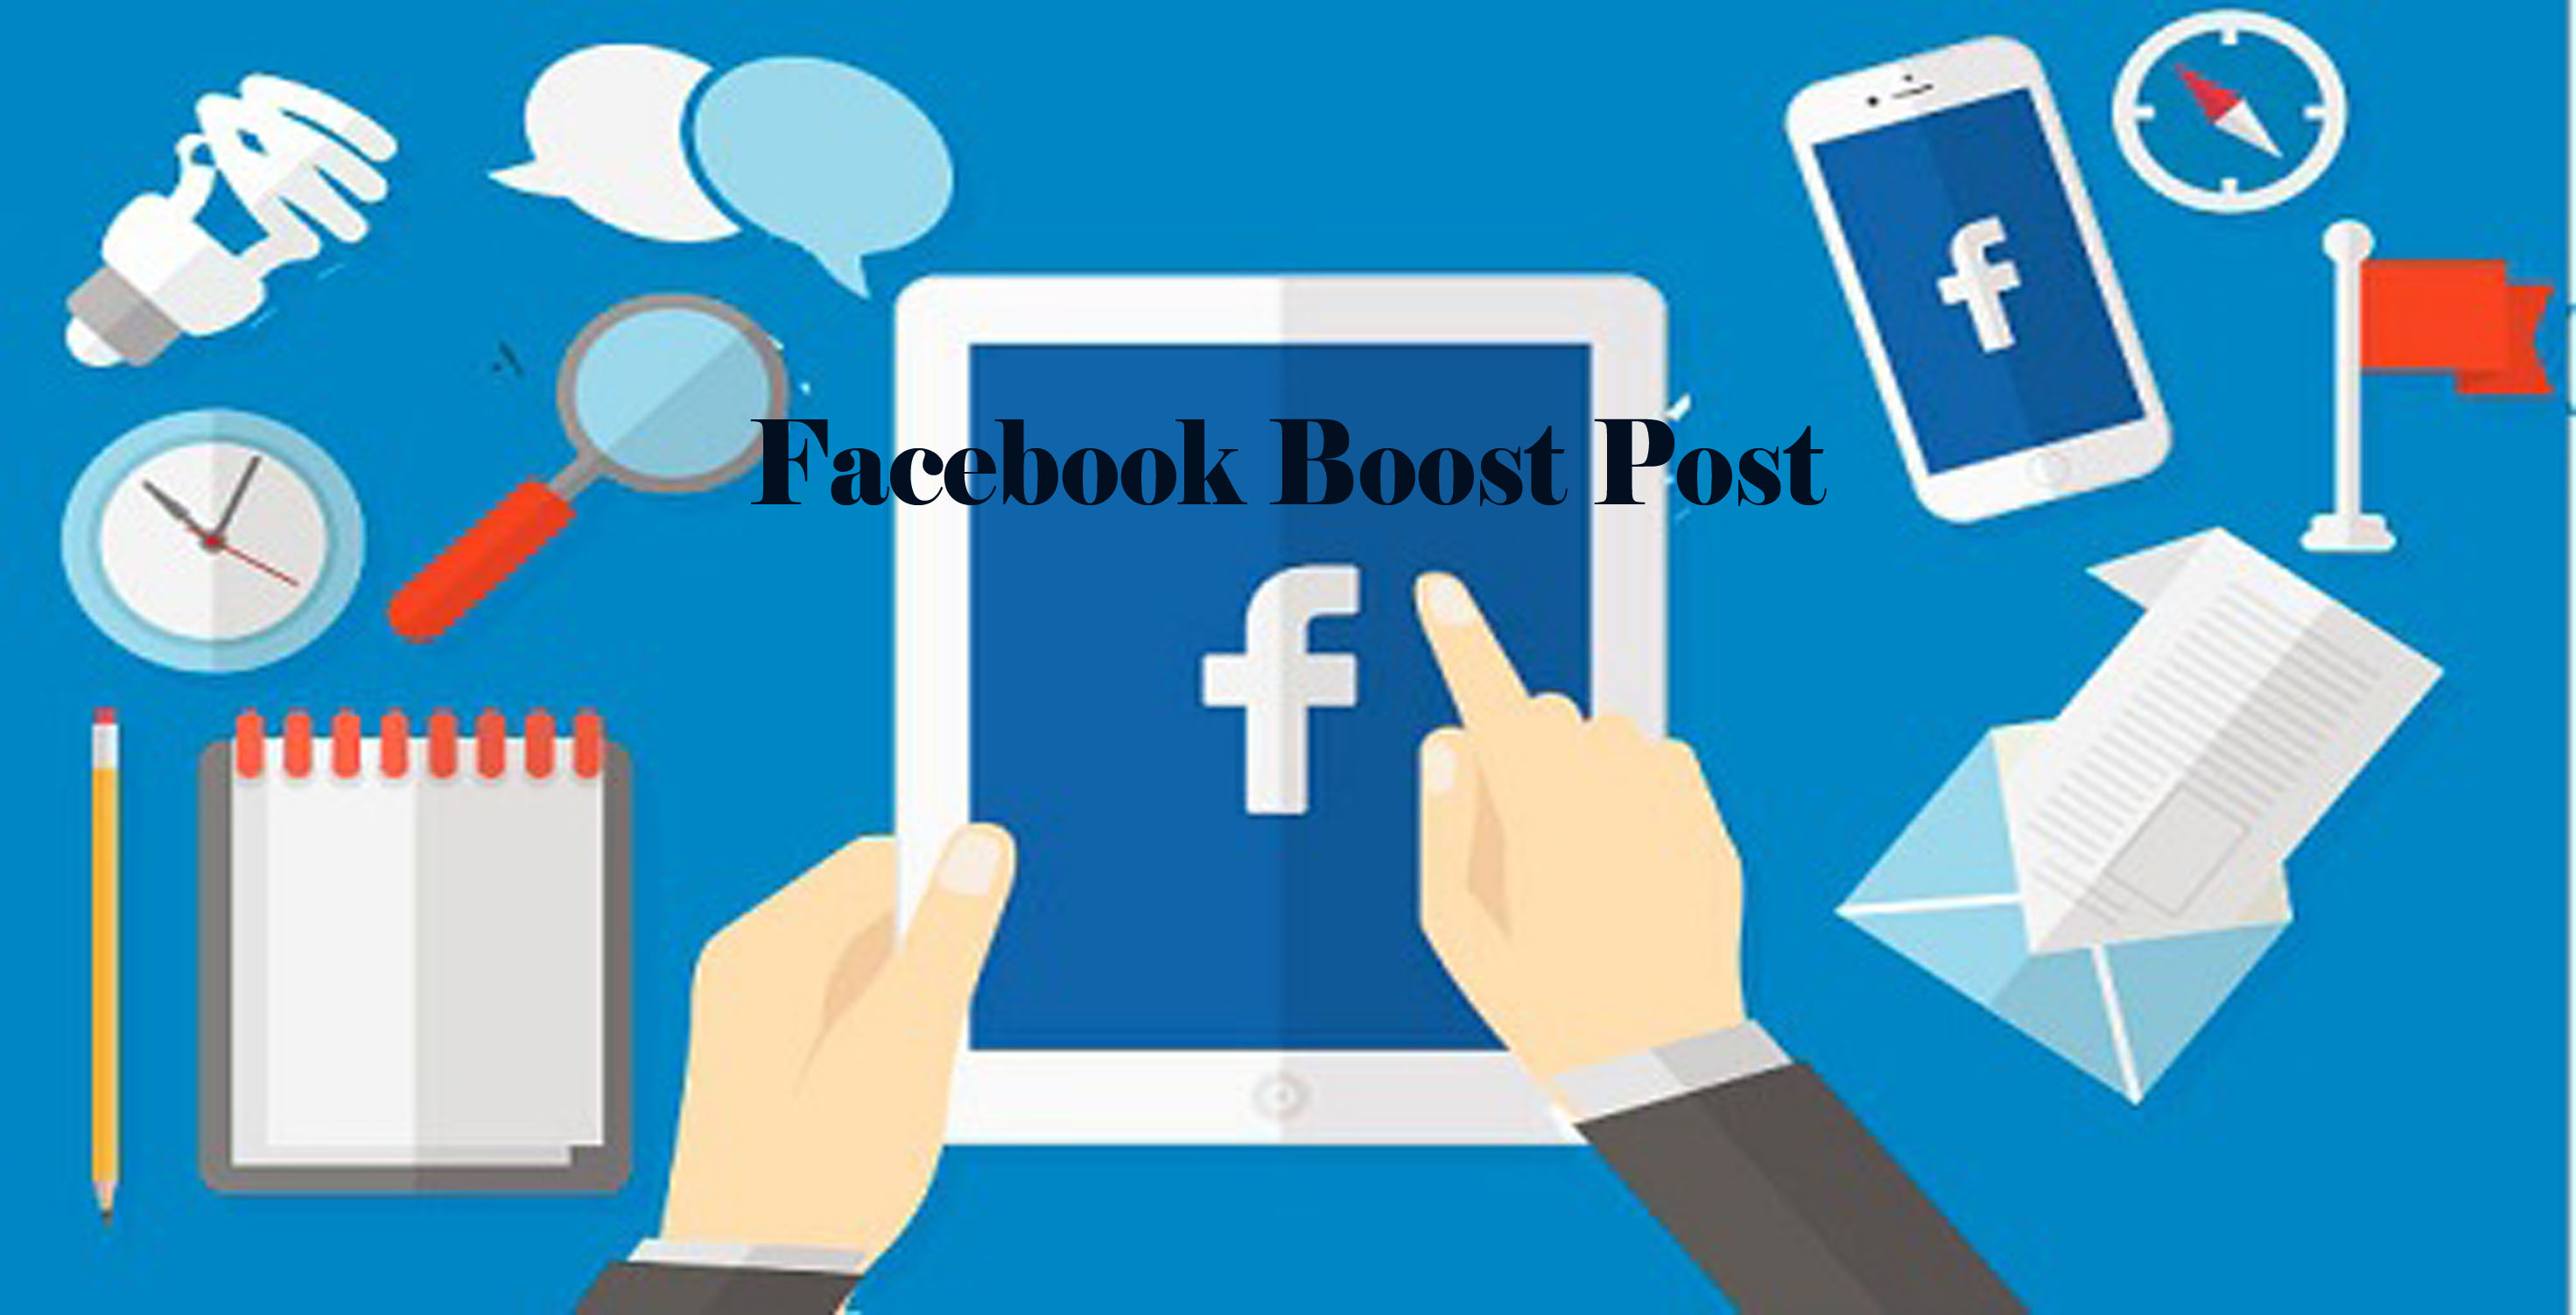 Facebook Boost Post - Facebook Pages | Facebook Posts